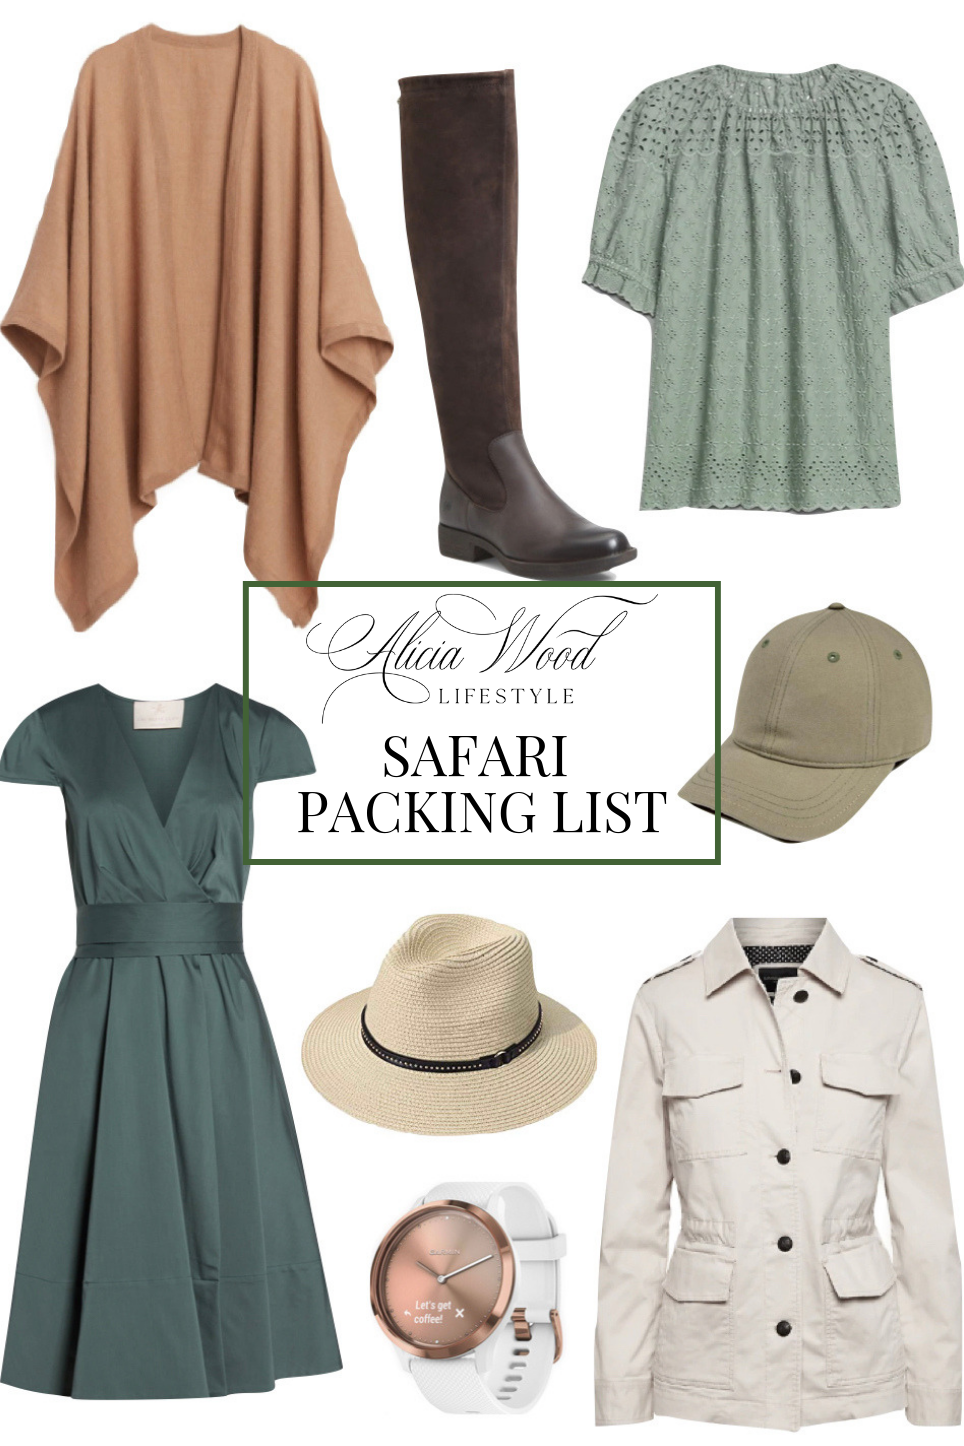 Wanderlust Wednesday: South African Safari Packing List